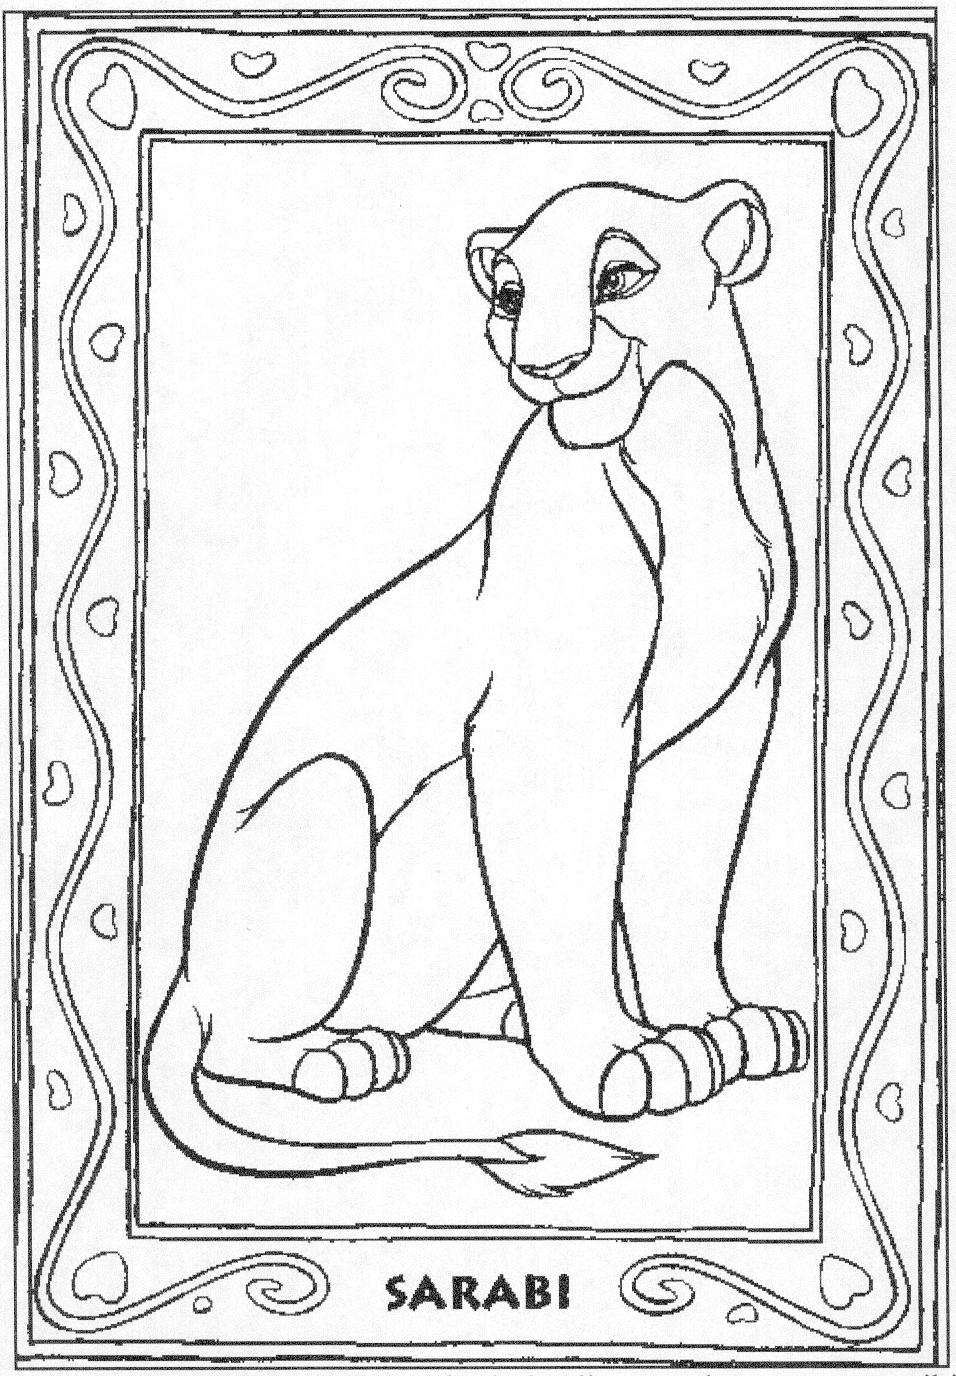 Coloring pages lion king - Disney Coloring Pages Lion King Free Large Images